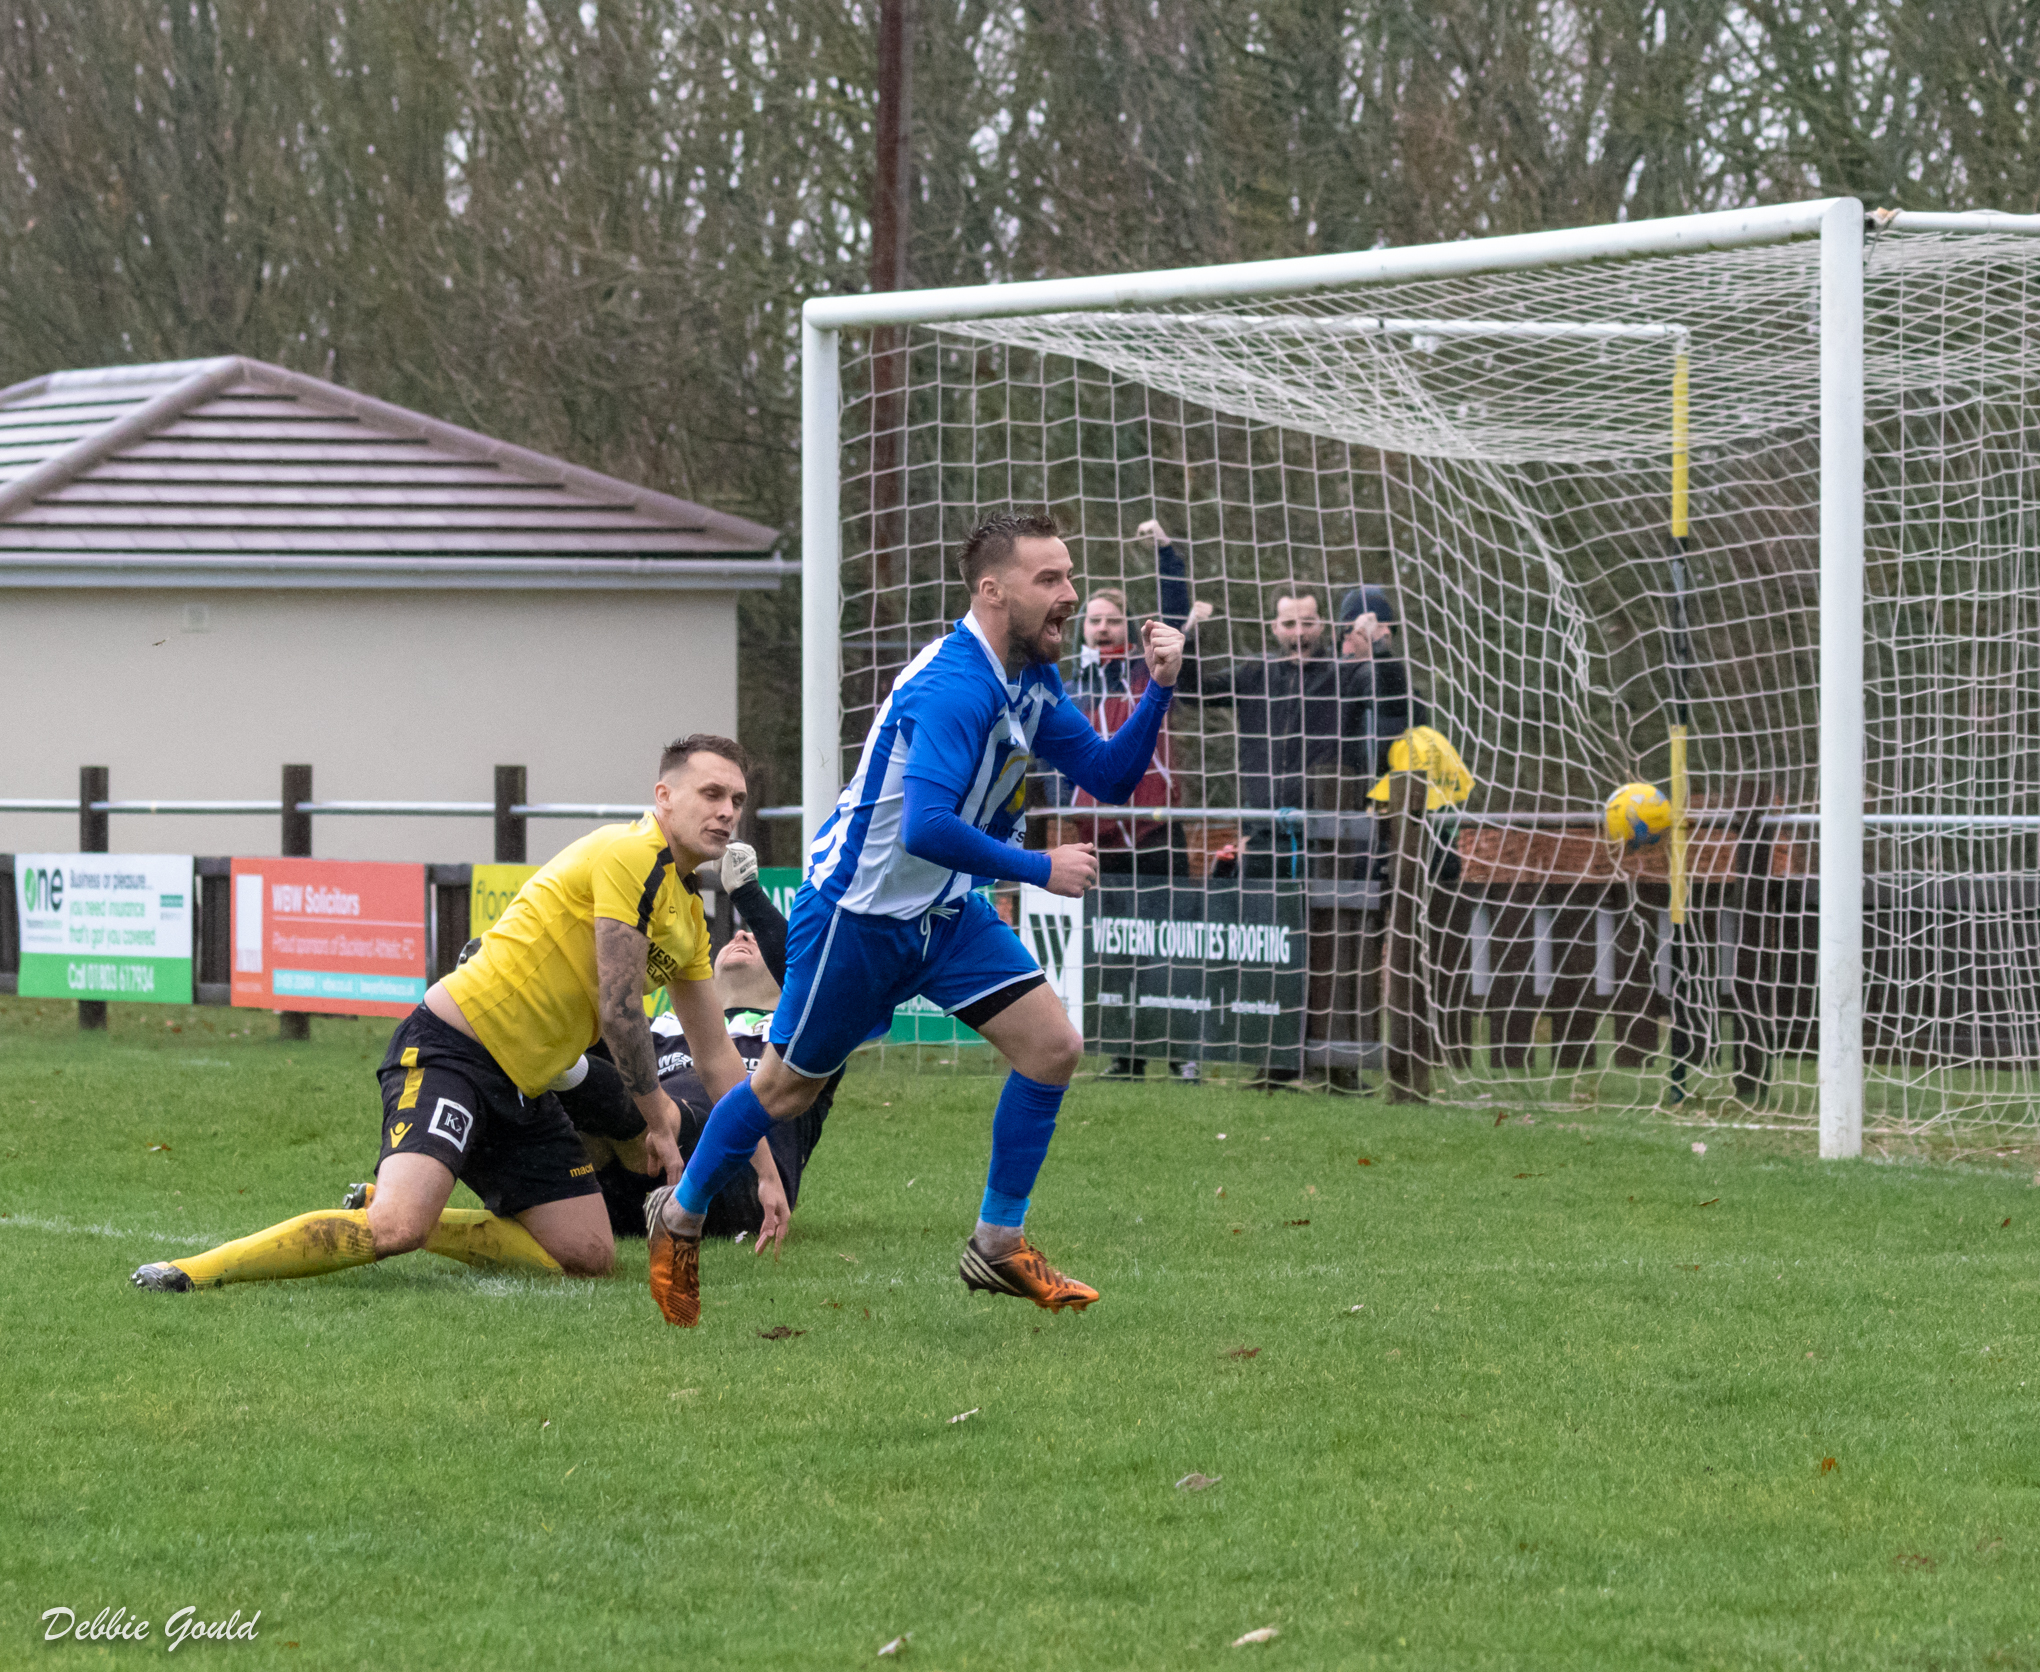 GOAL: Jack Taylor celebrates opening the scoring for Bridgwater Town at Buckland. Pic: Debbie Gould